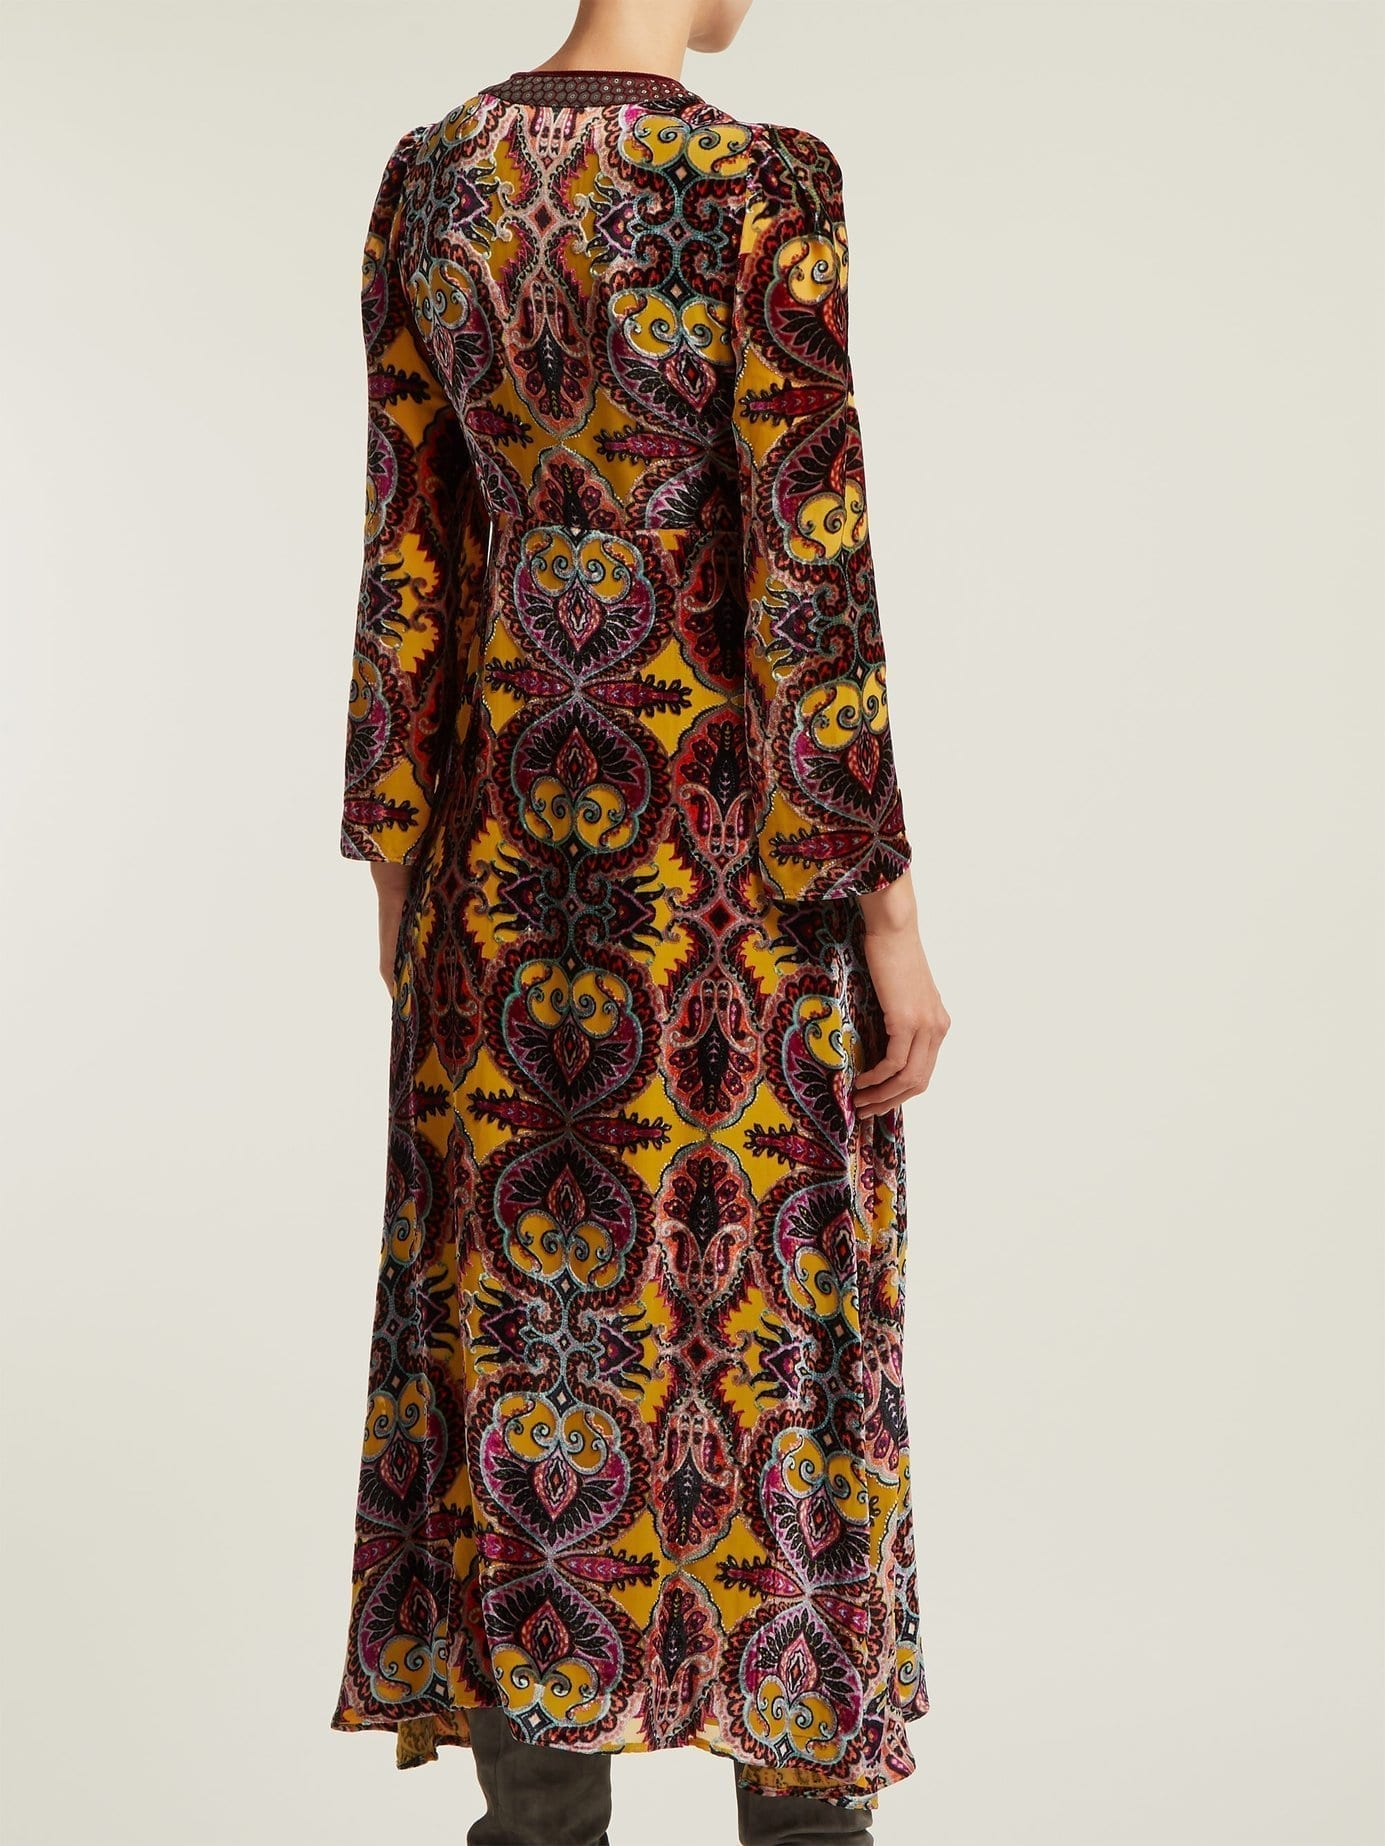 ETRO Paisley Devoré Velvet Midi Yellow Dress